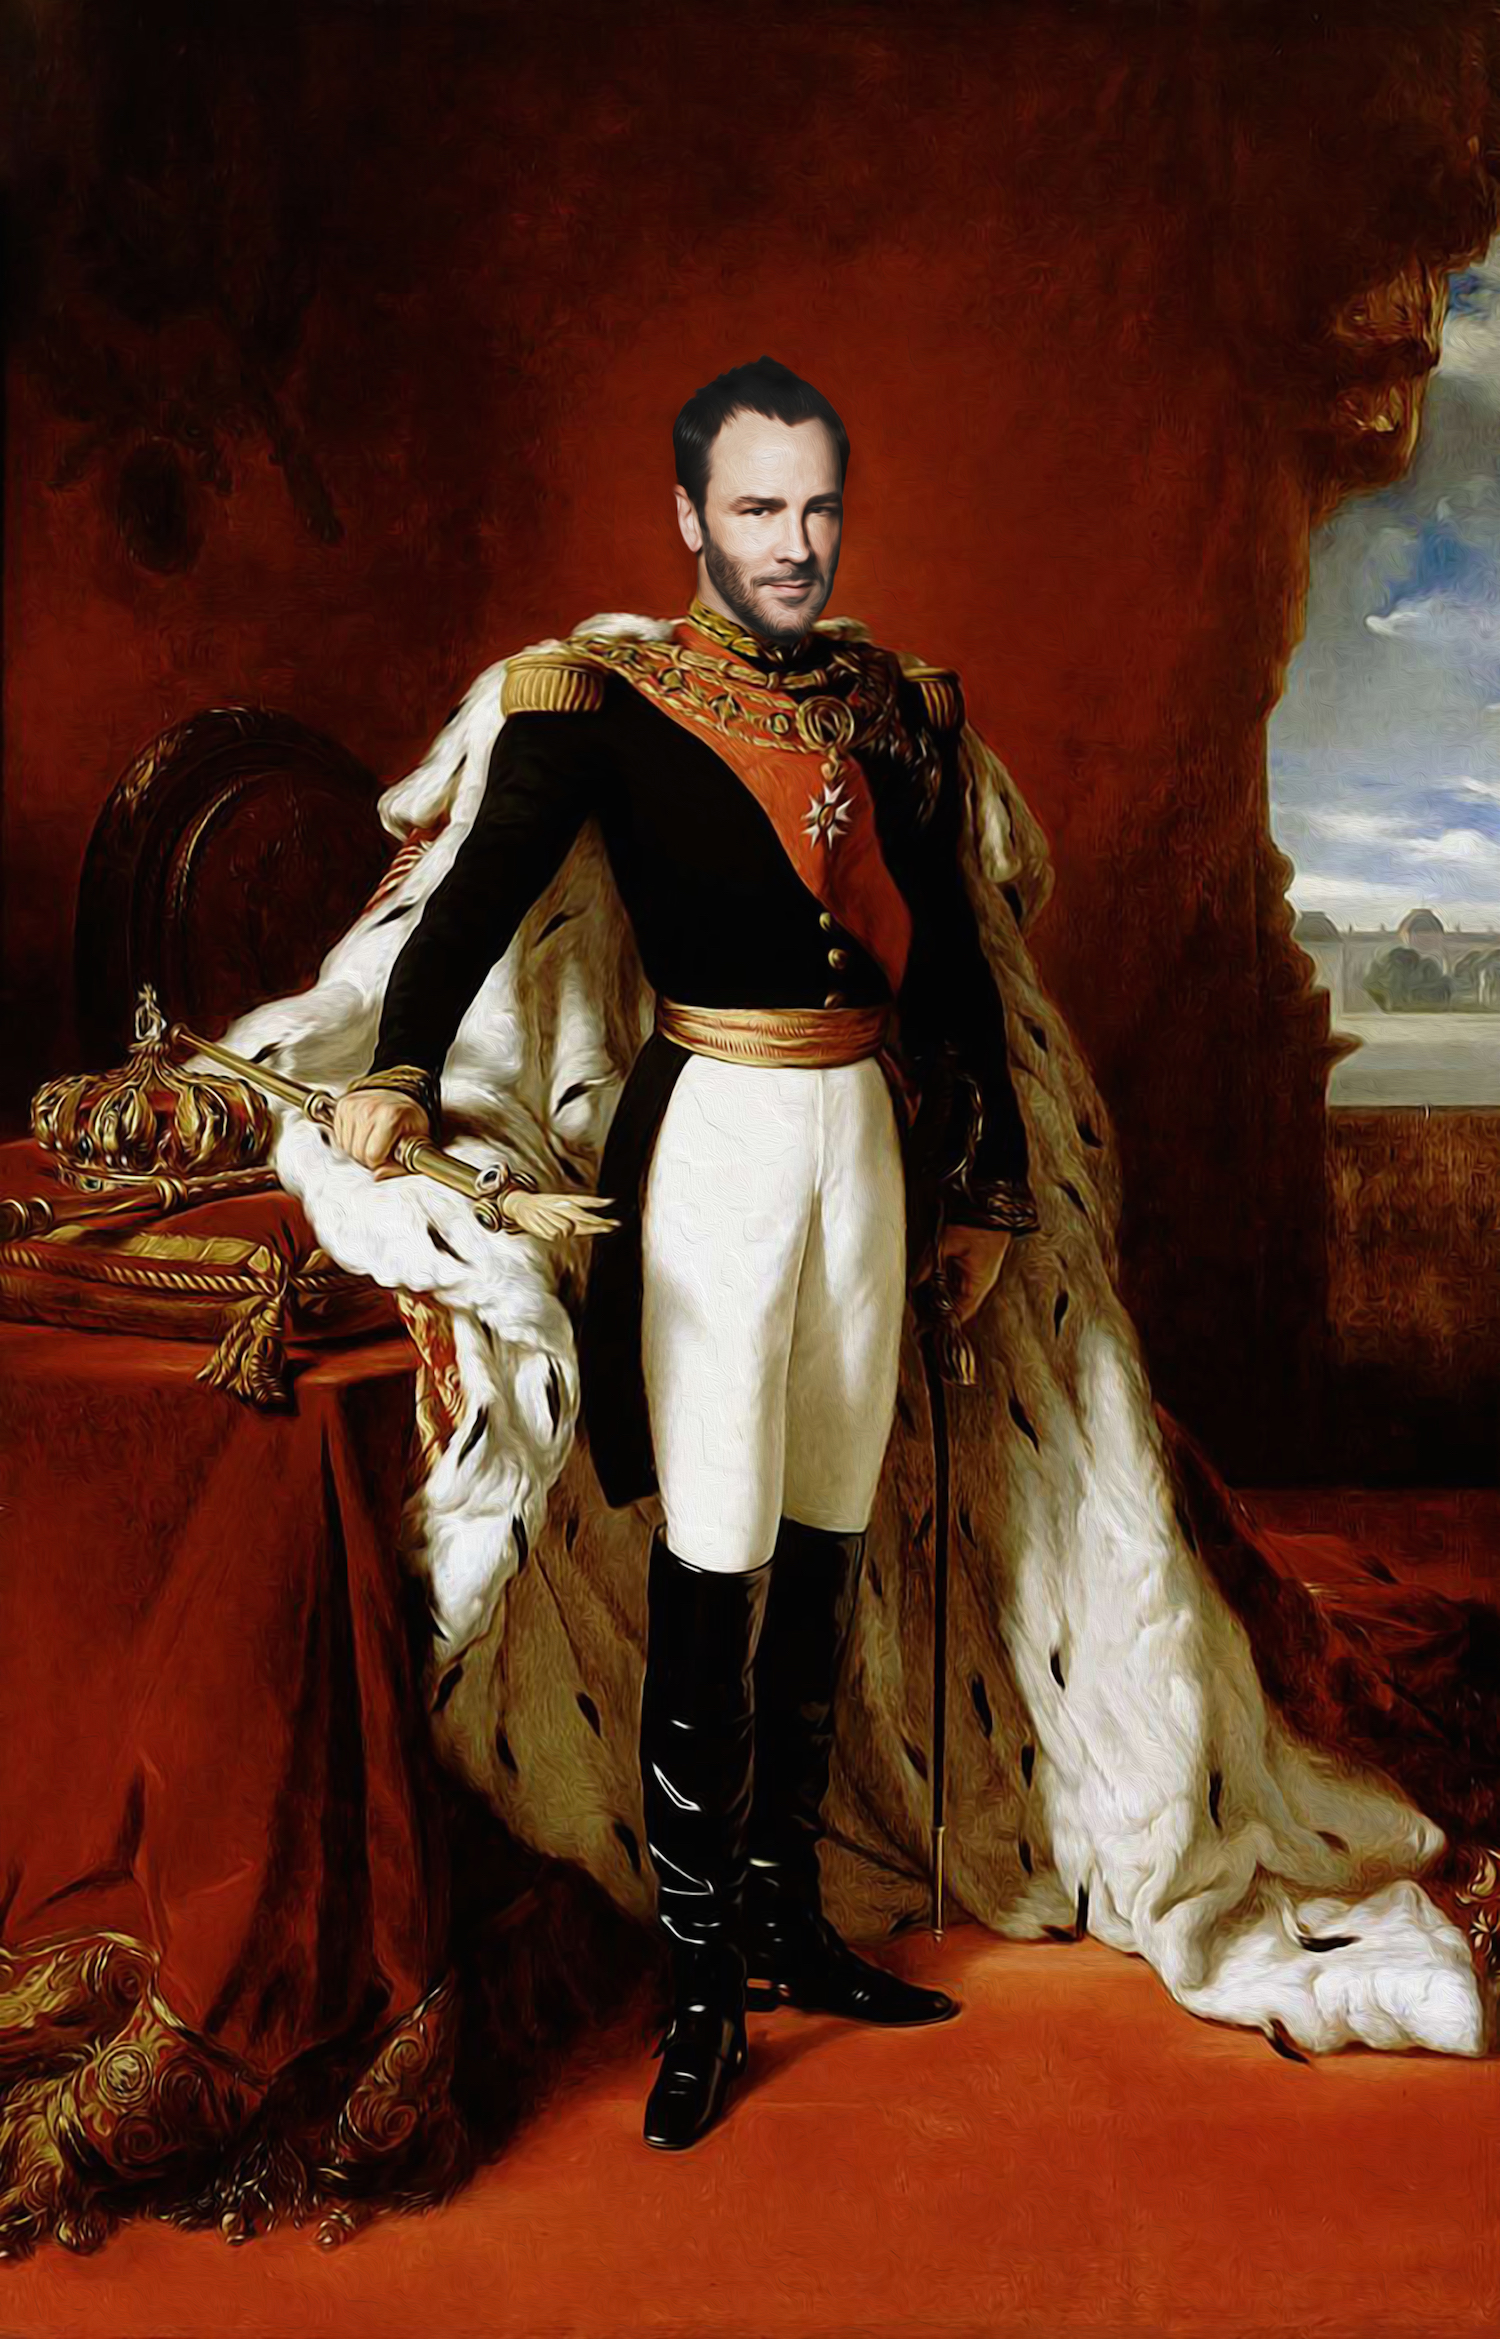 tom-ford-renaissance.jpg